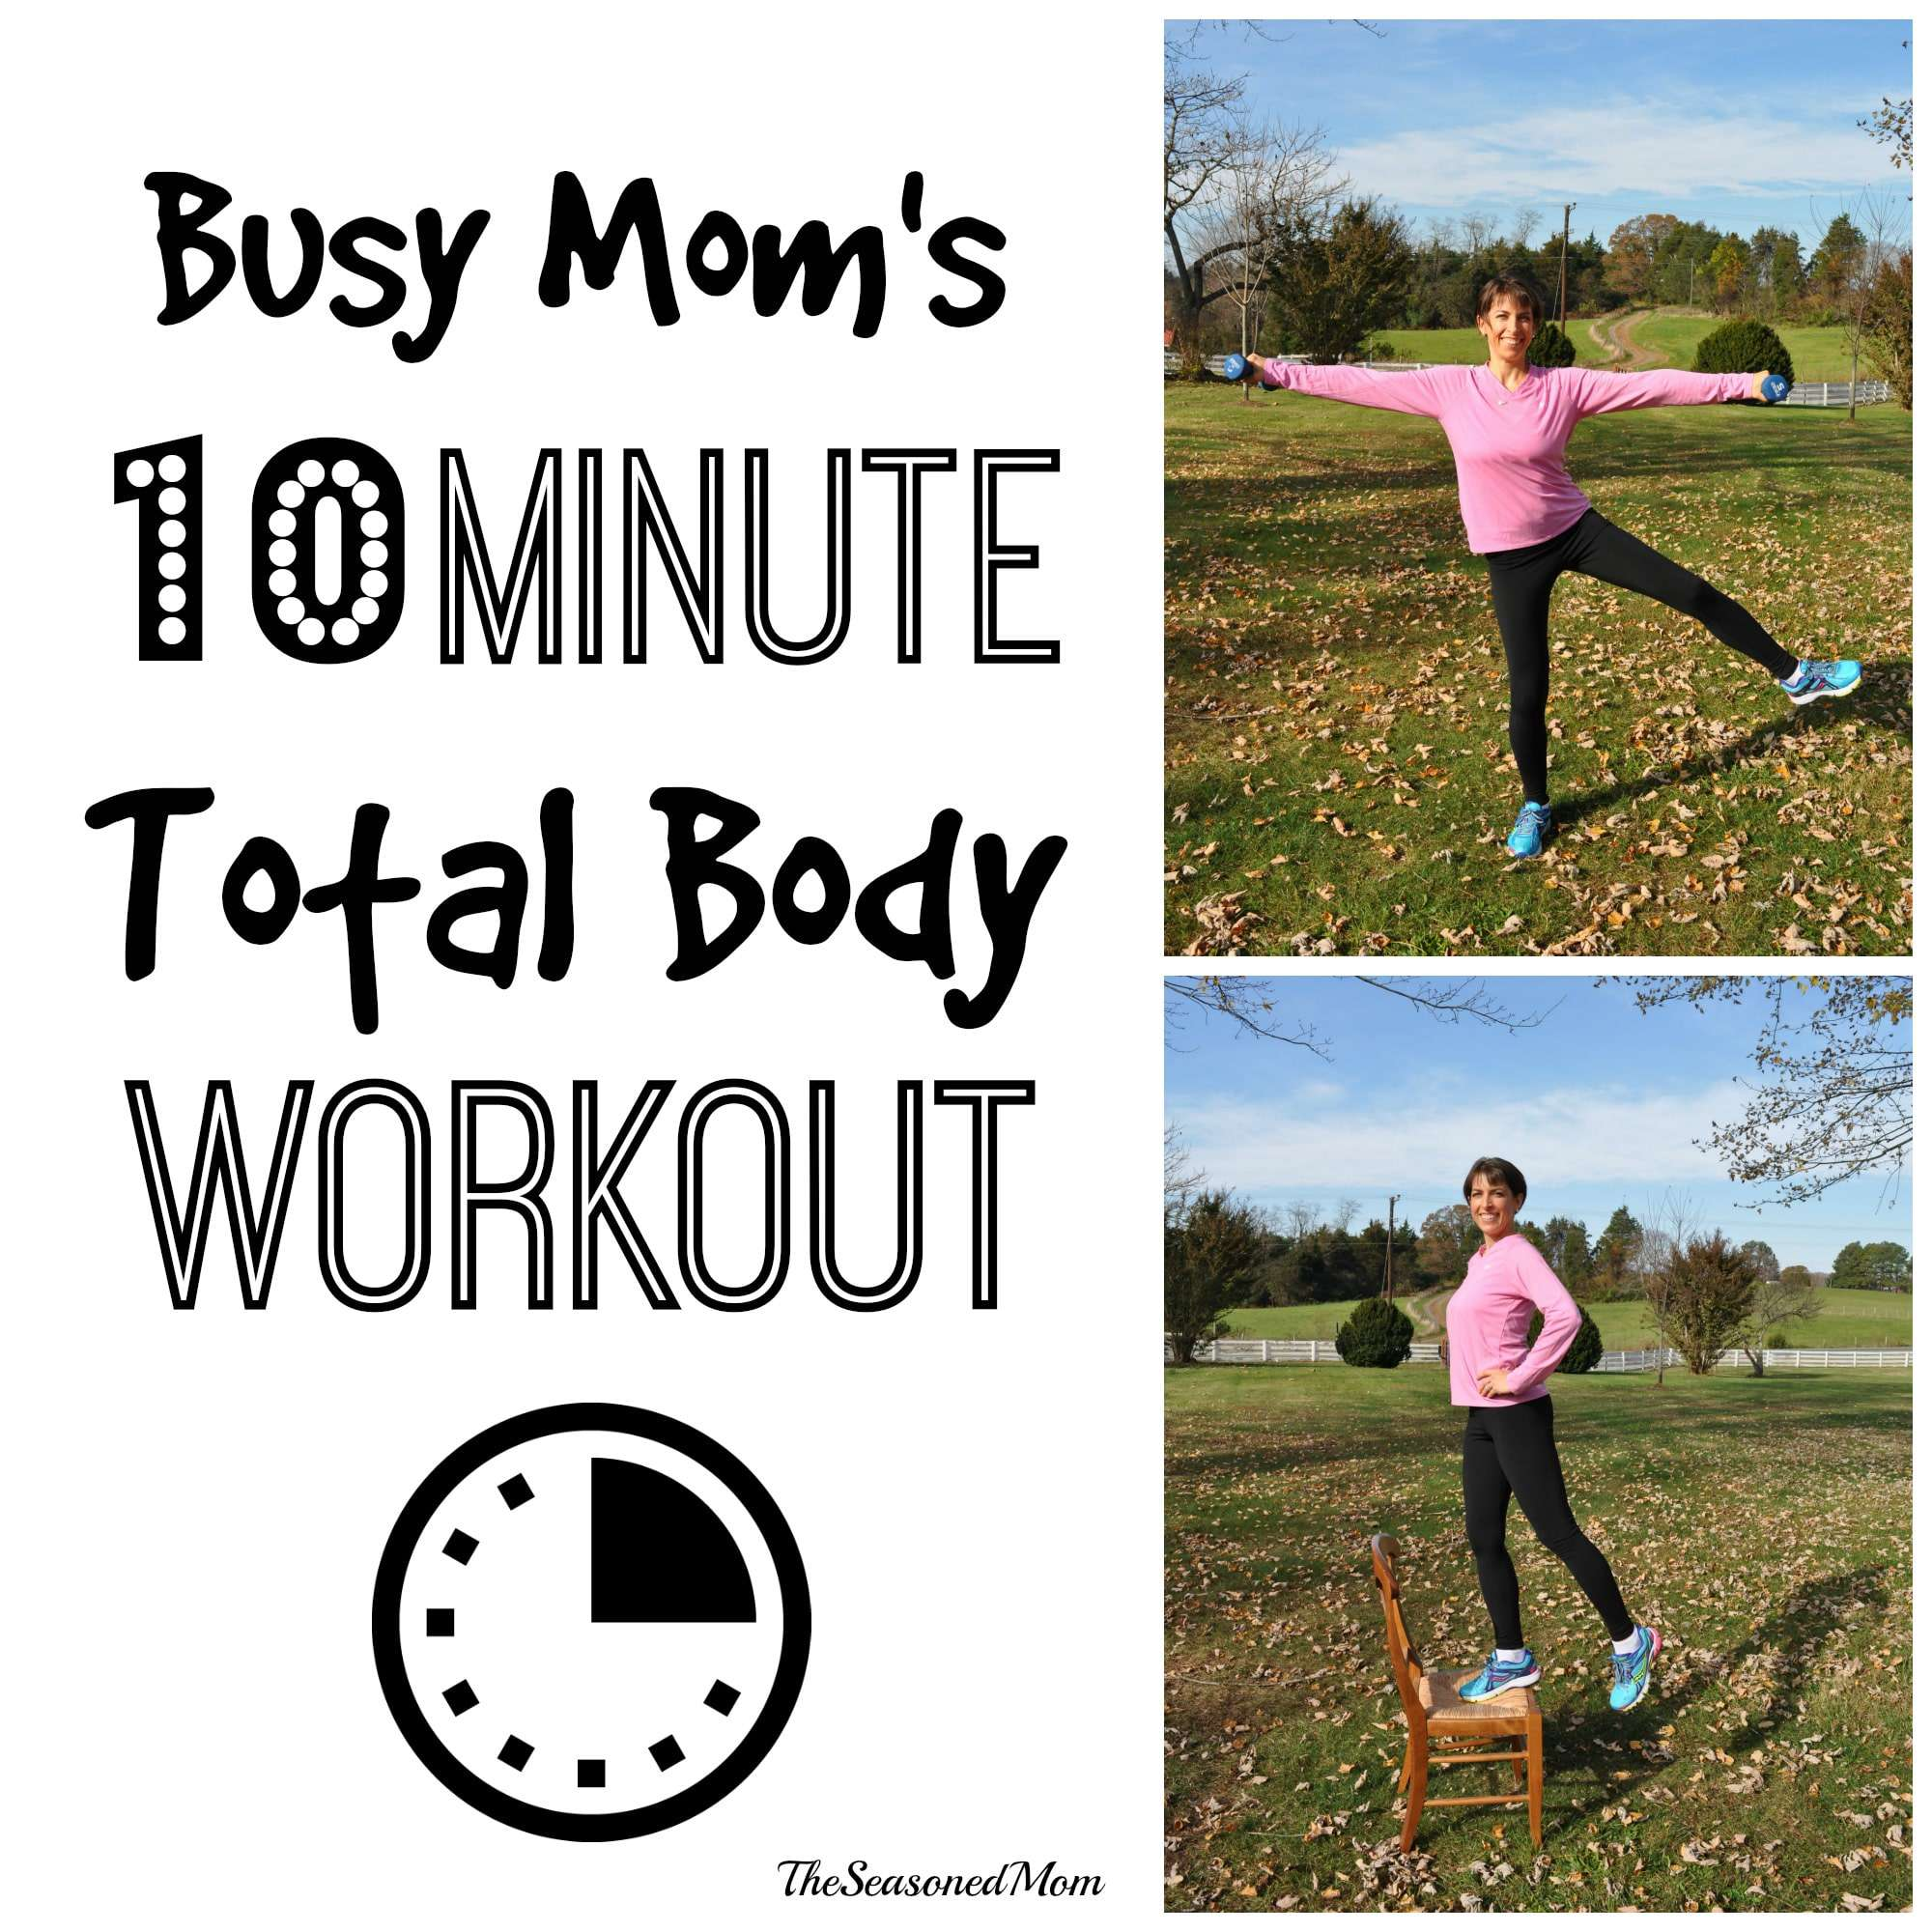 Busy Mom's 10 Minute Total Body Workout